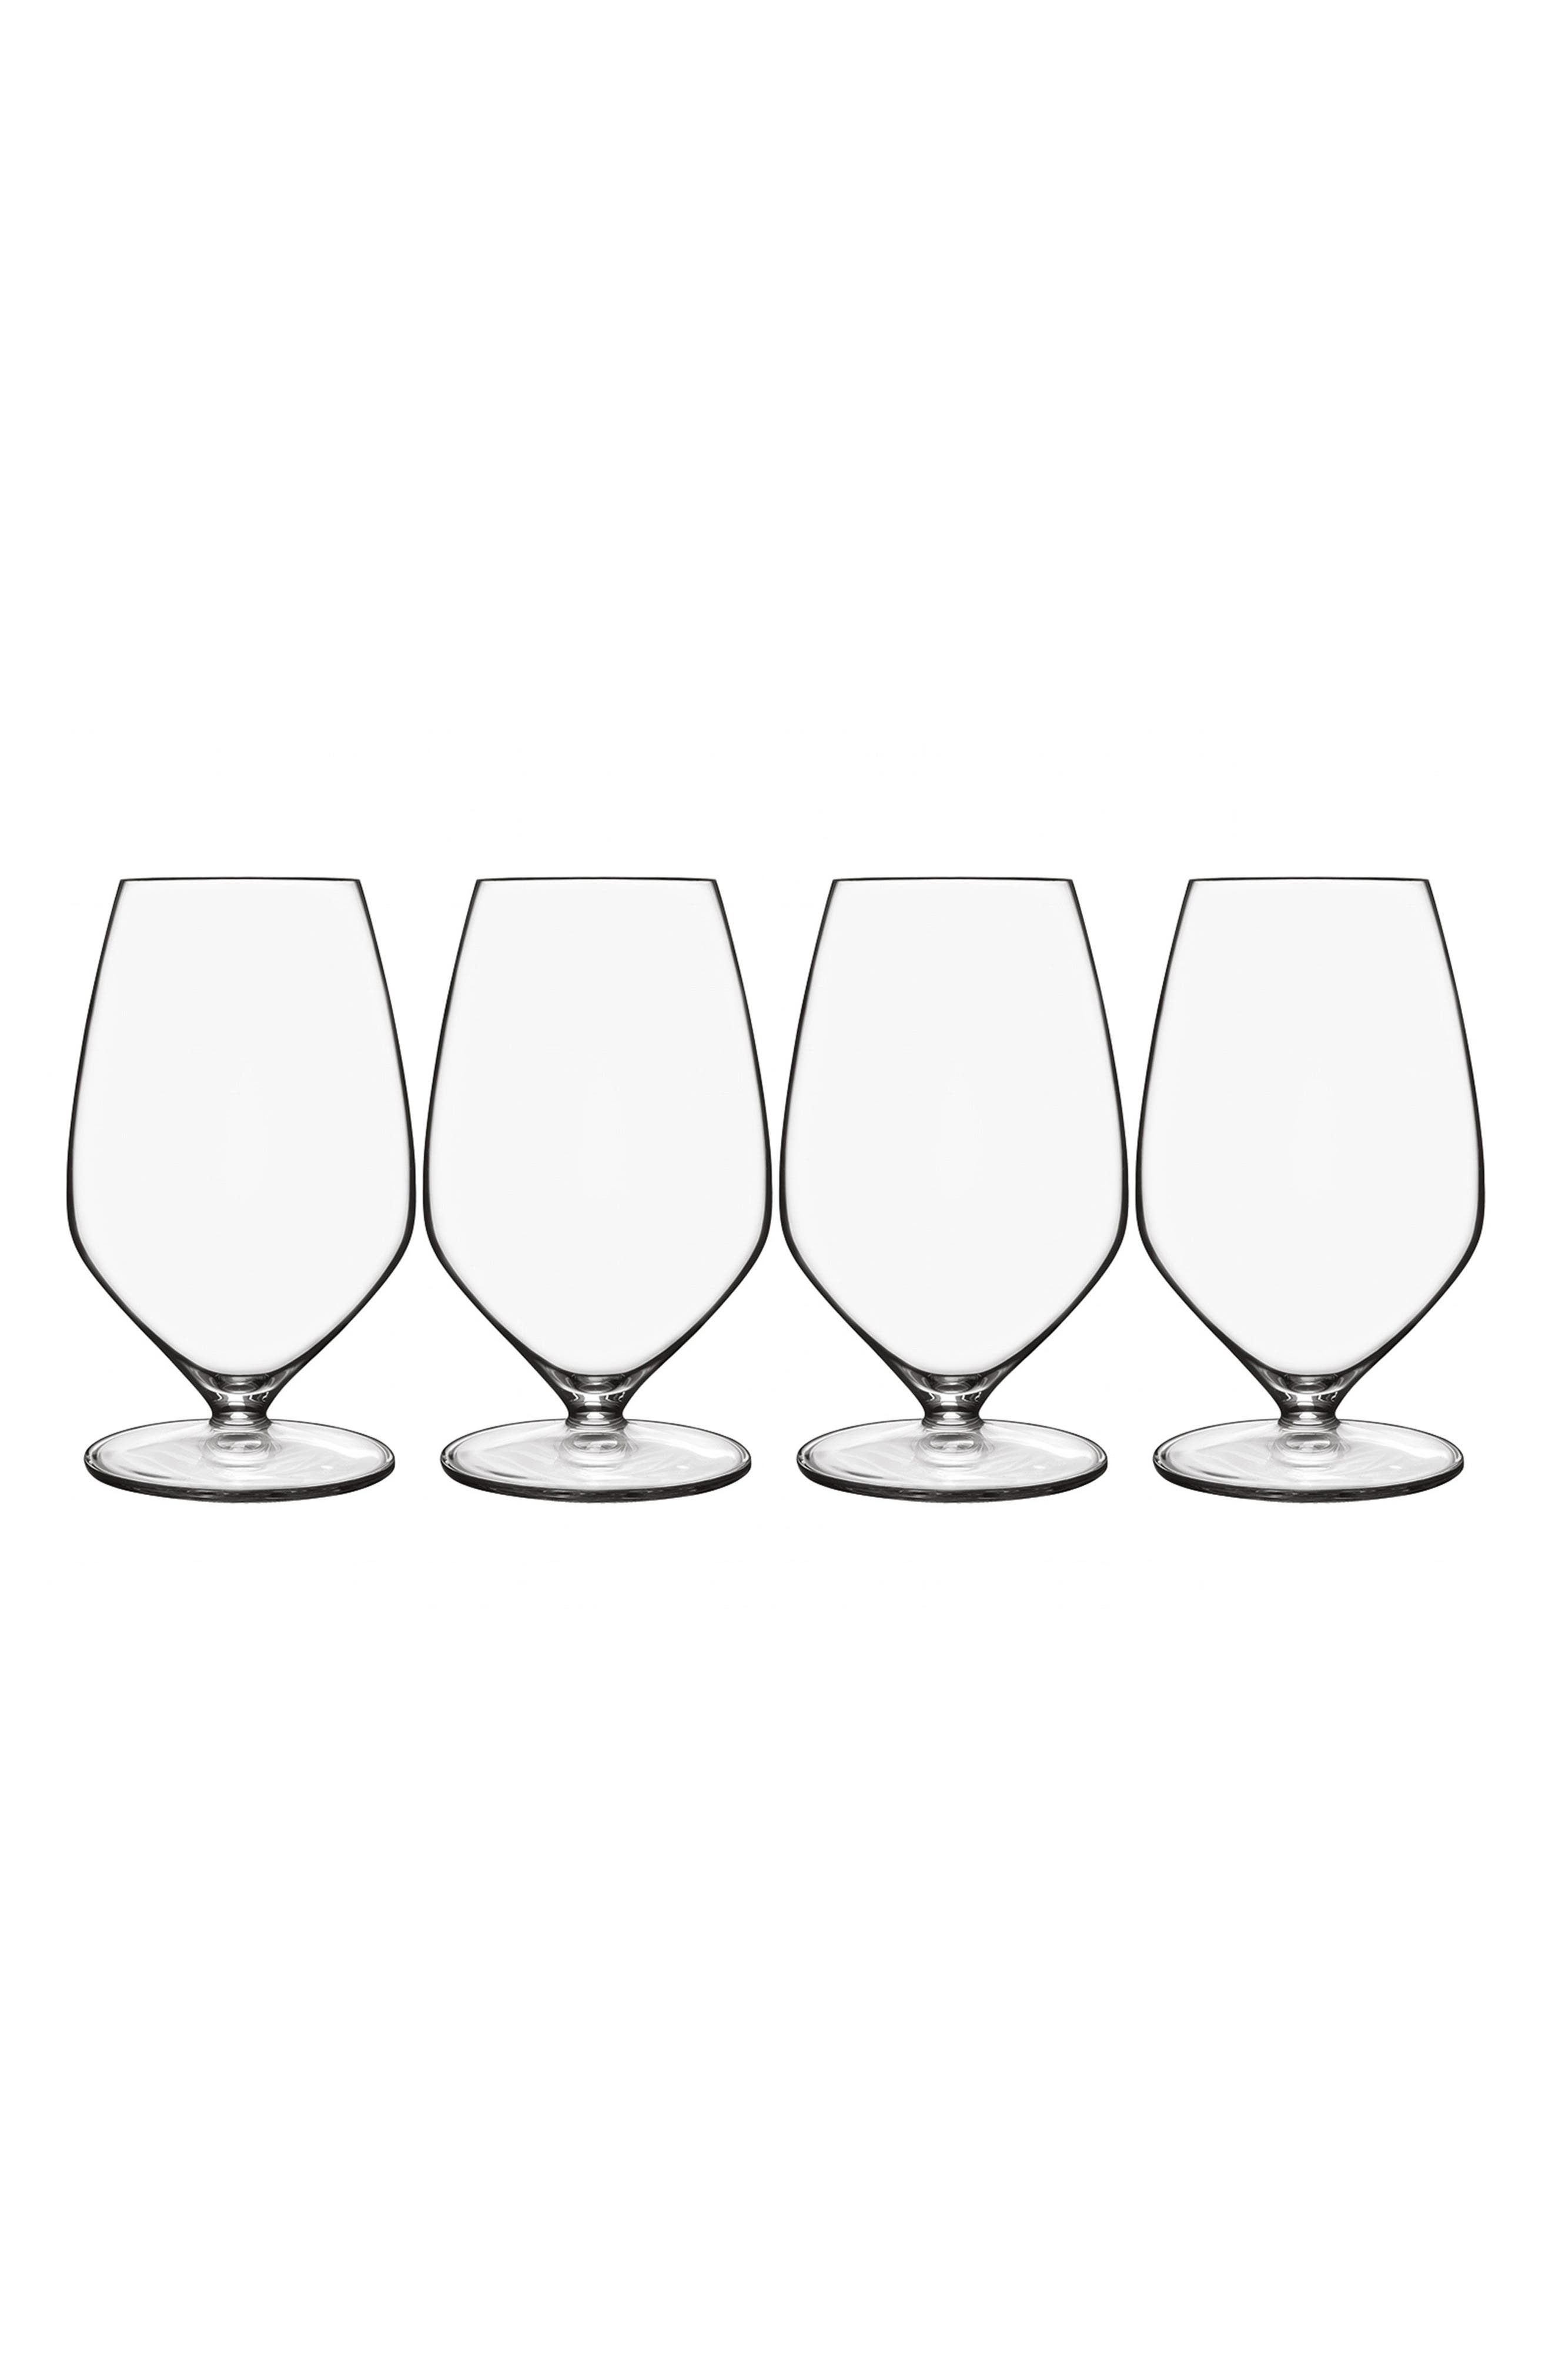 T-Glass Set of 4 Sauvignon Glasses,                             Main thumbnail 1, color,                             Clear